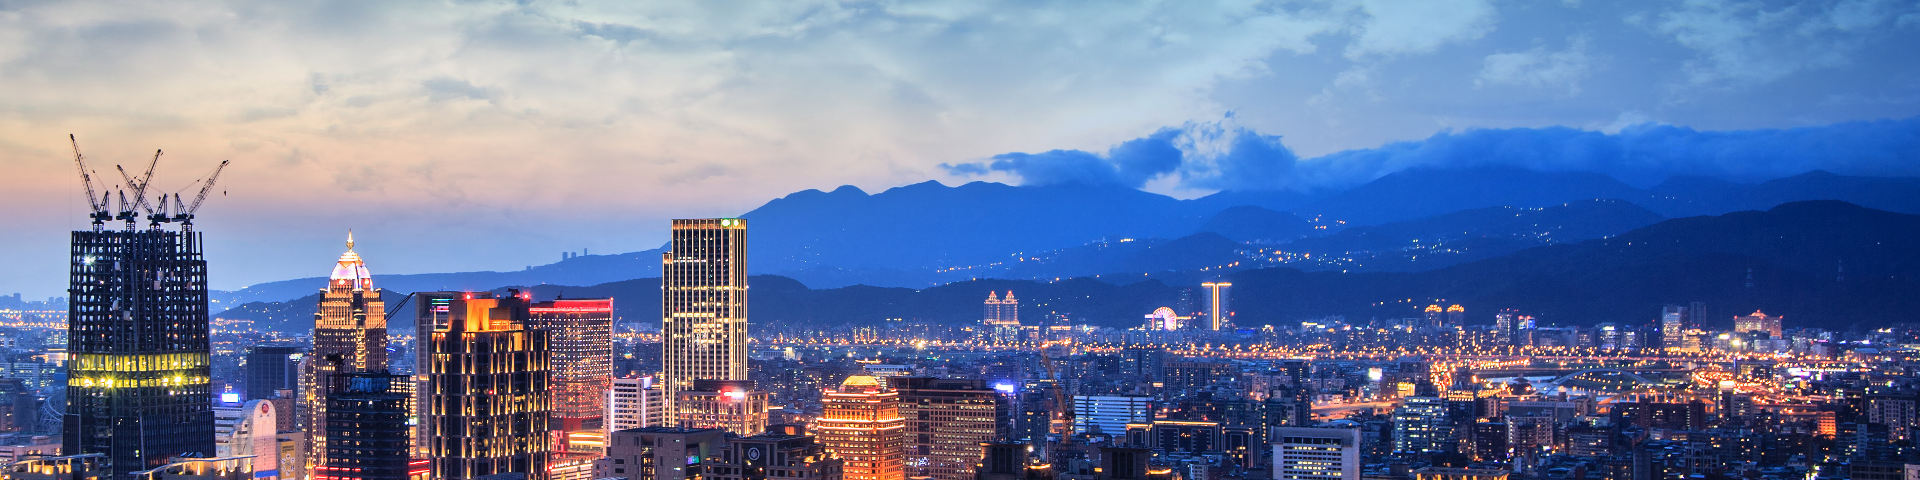 Taipei city view